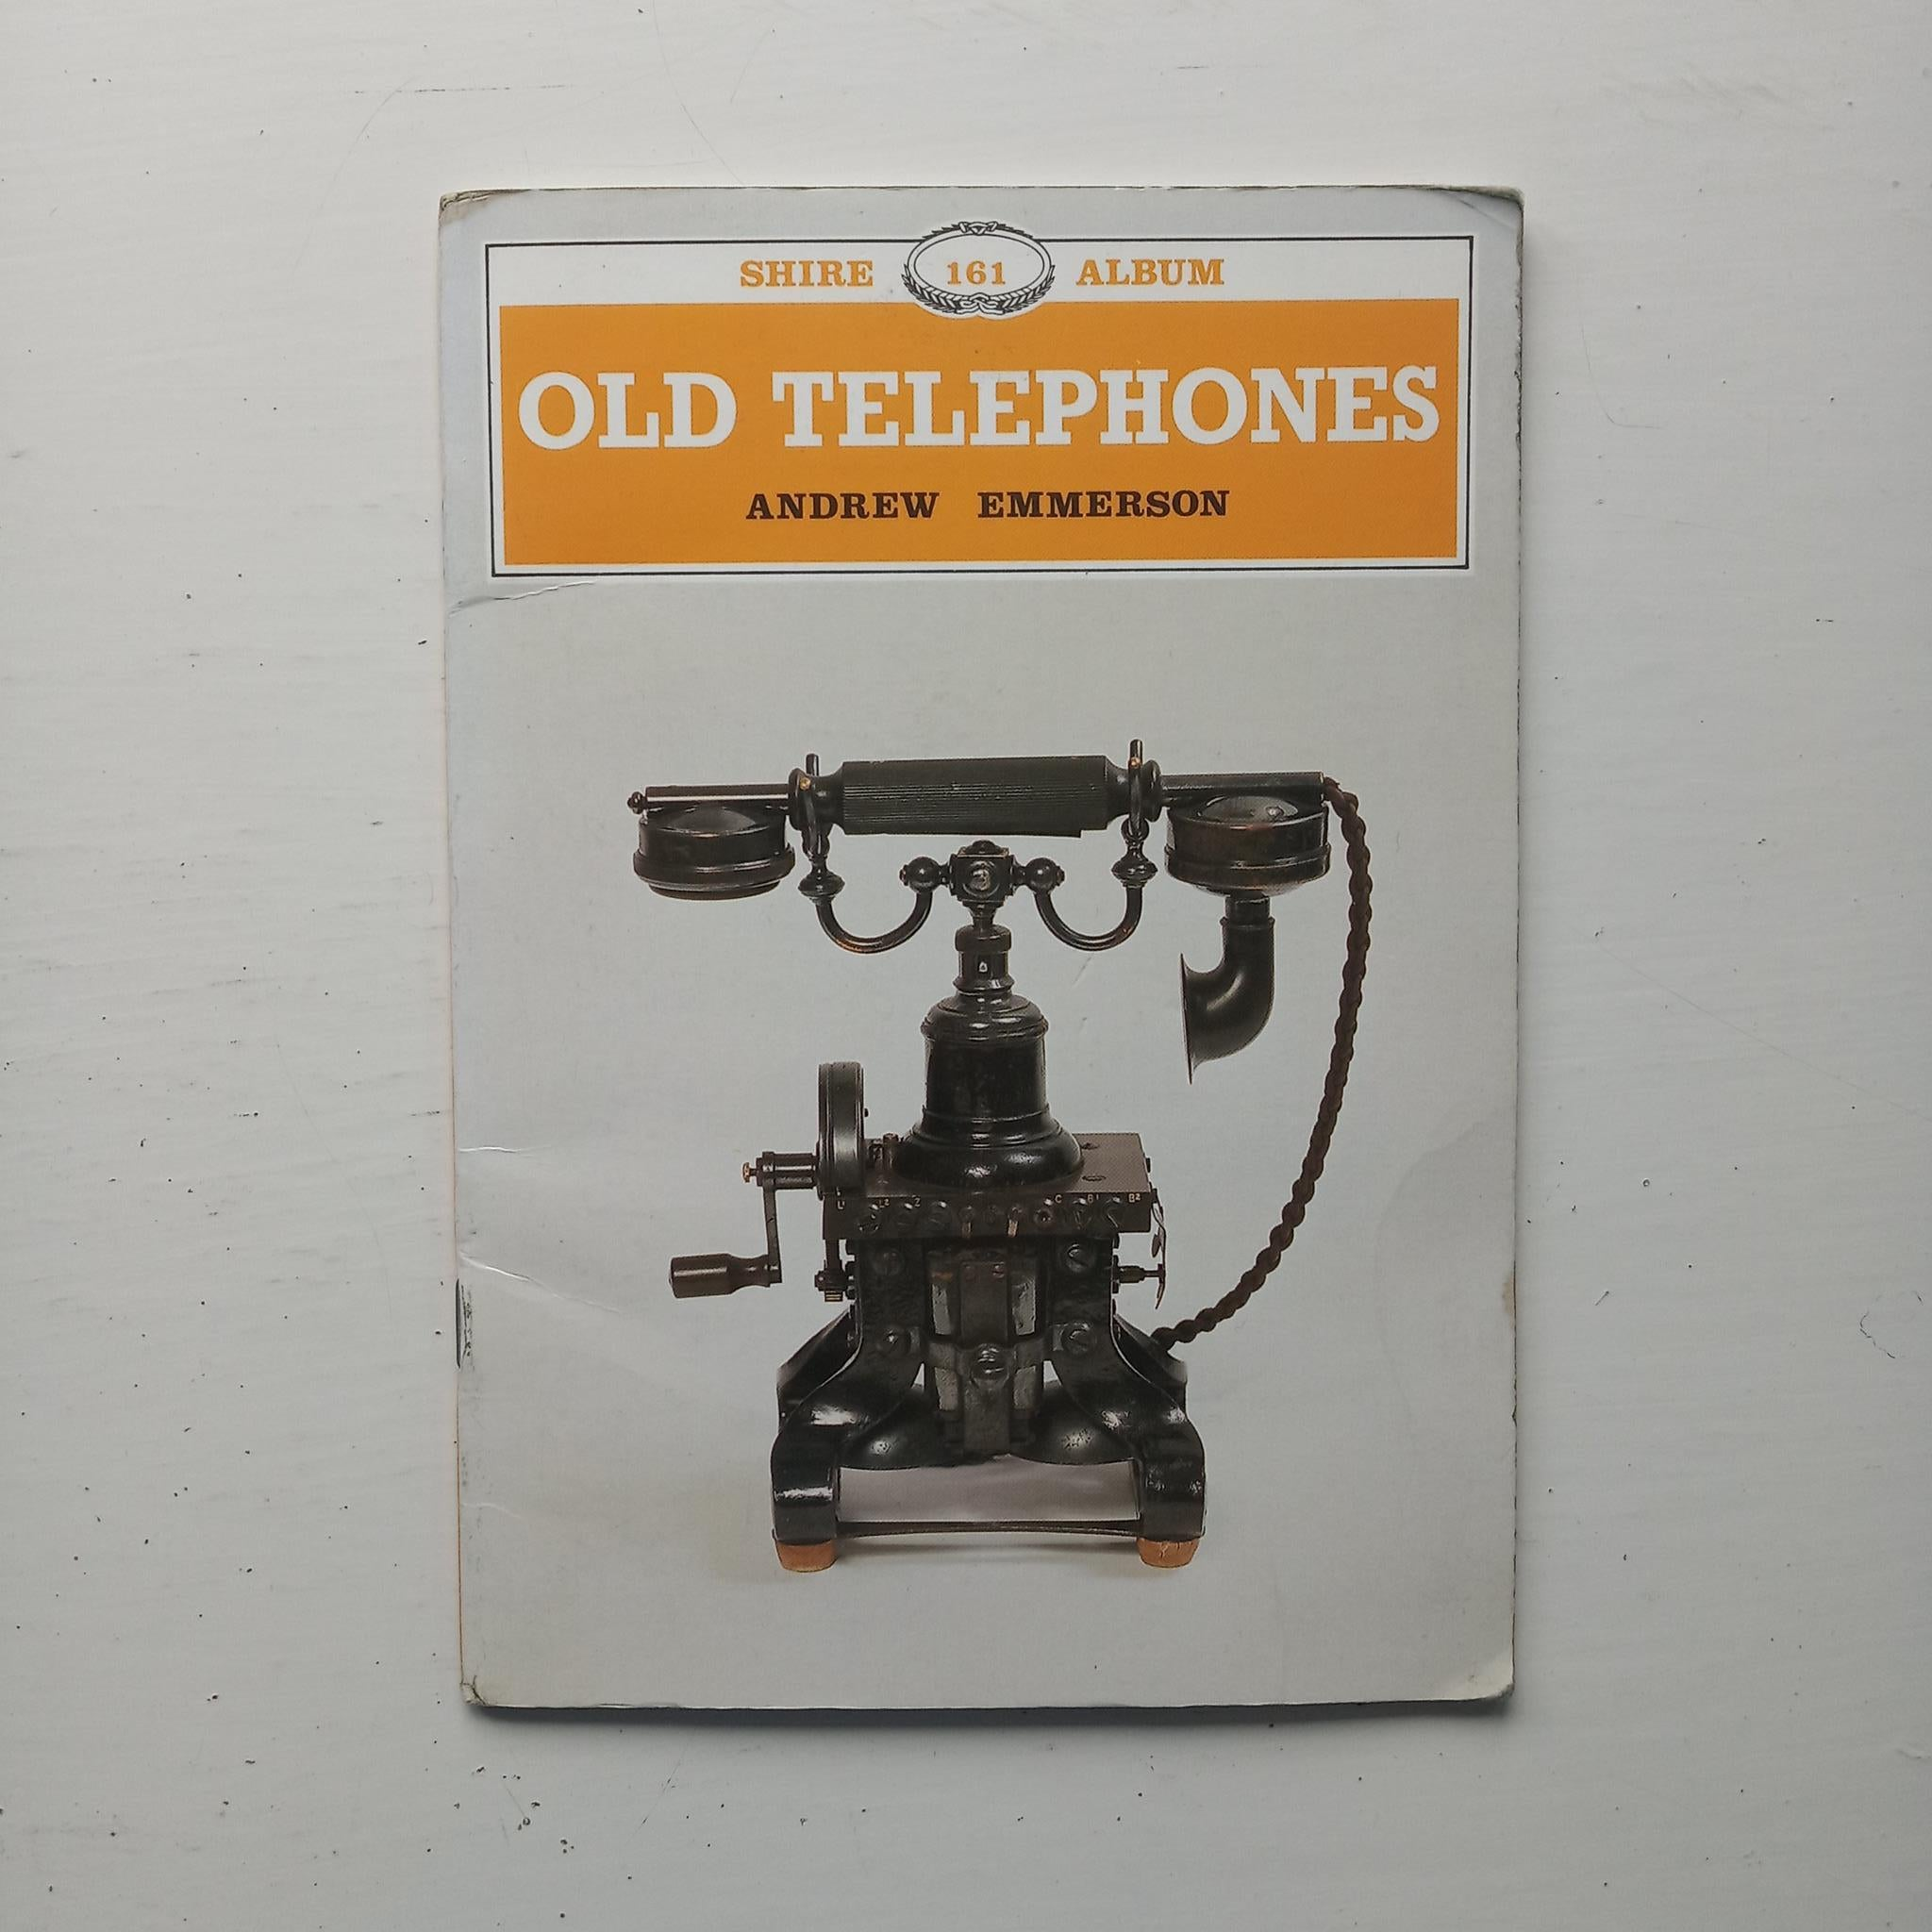 Old Telephones by Andrew Emmerson